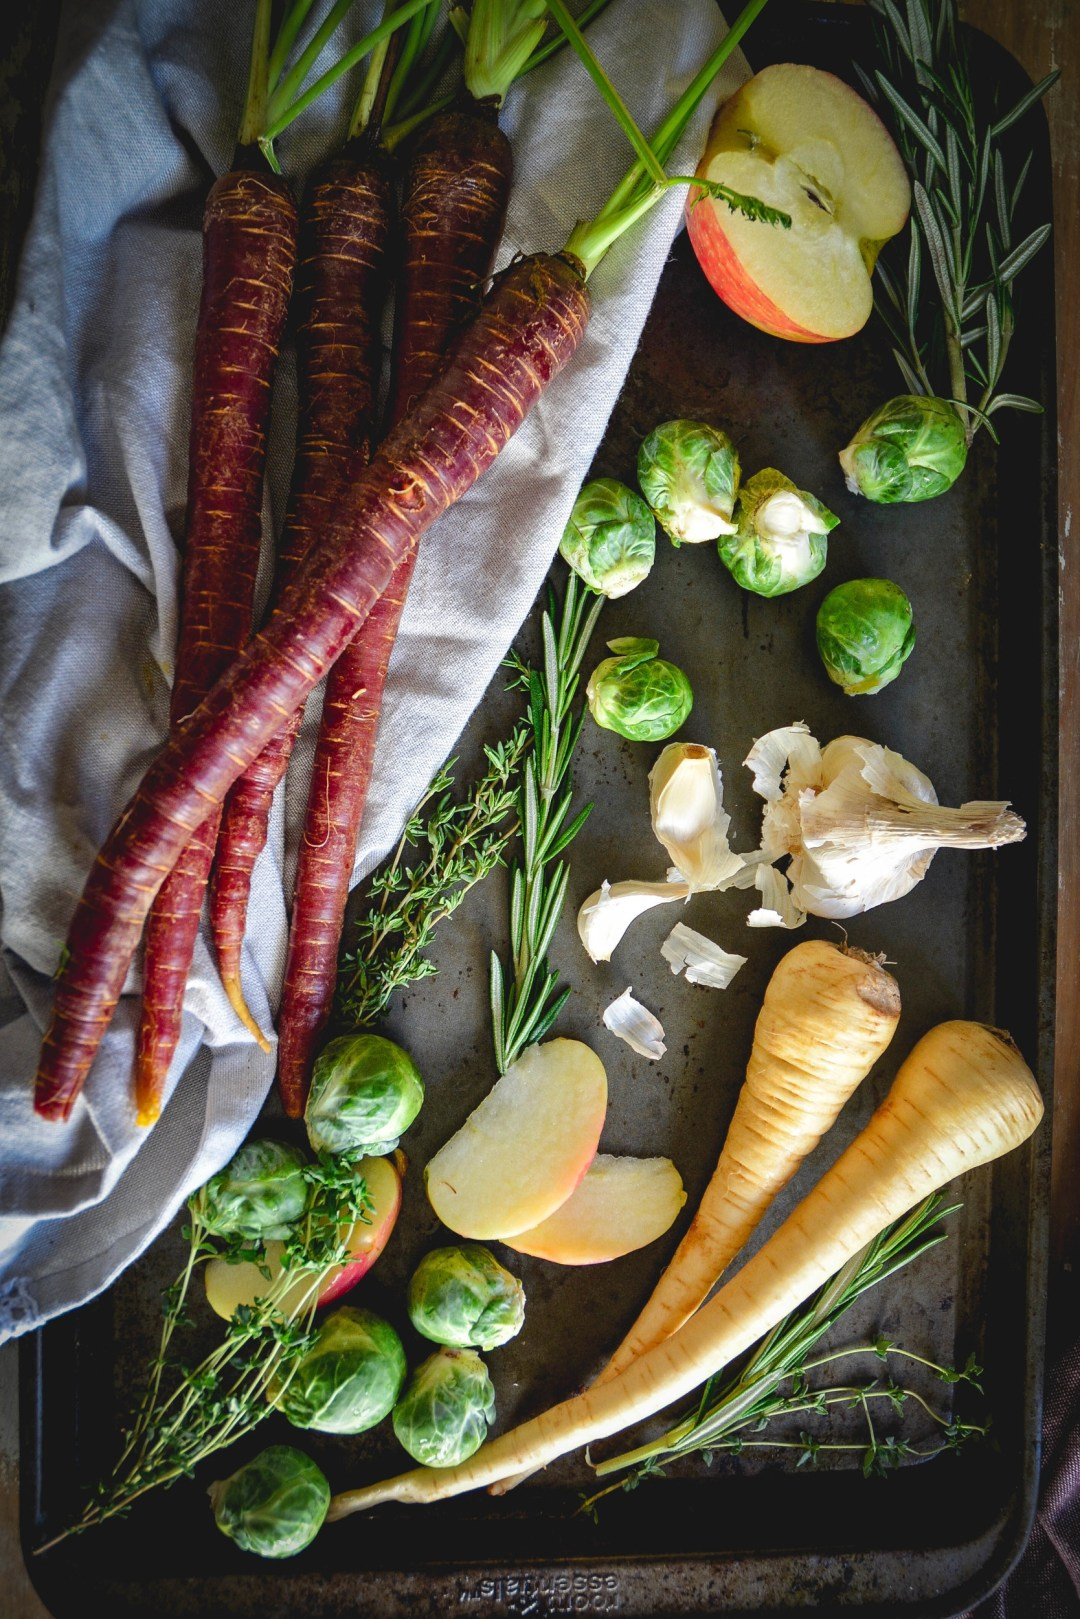 carrots, brussels sprouts, apple, parsnip on tray with herbs and napkin